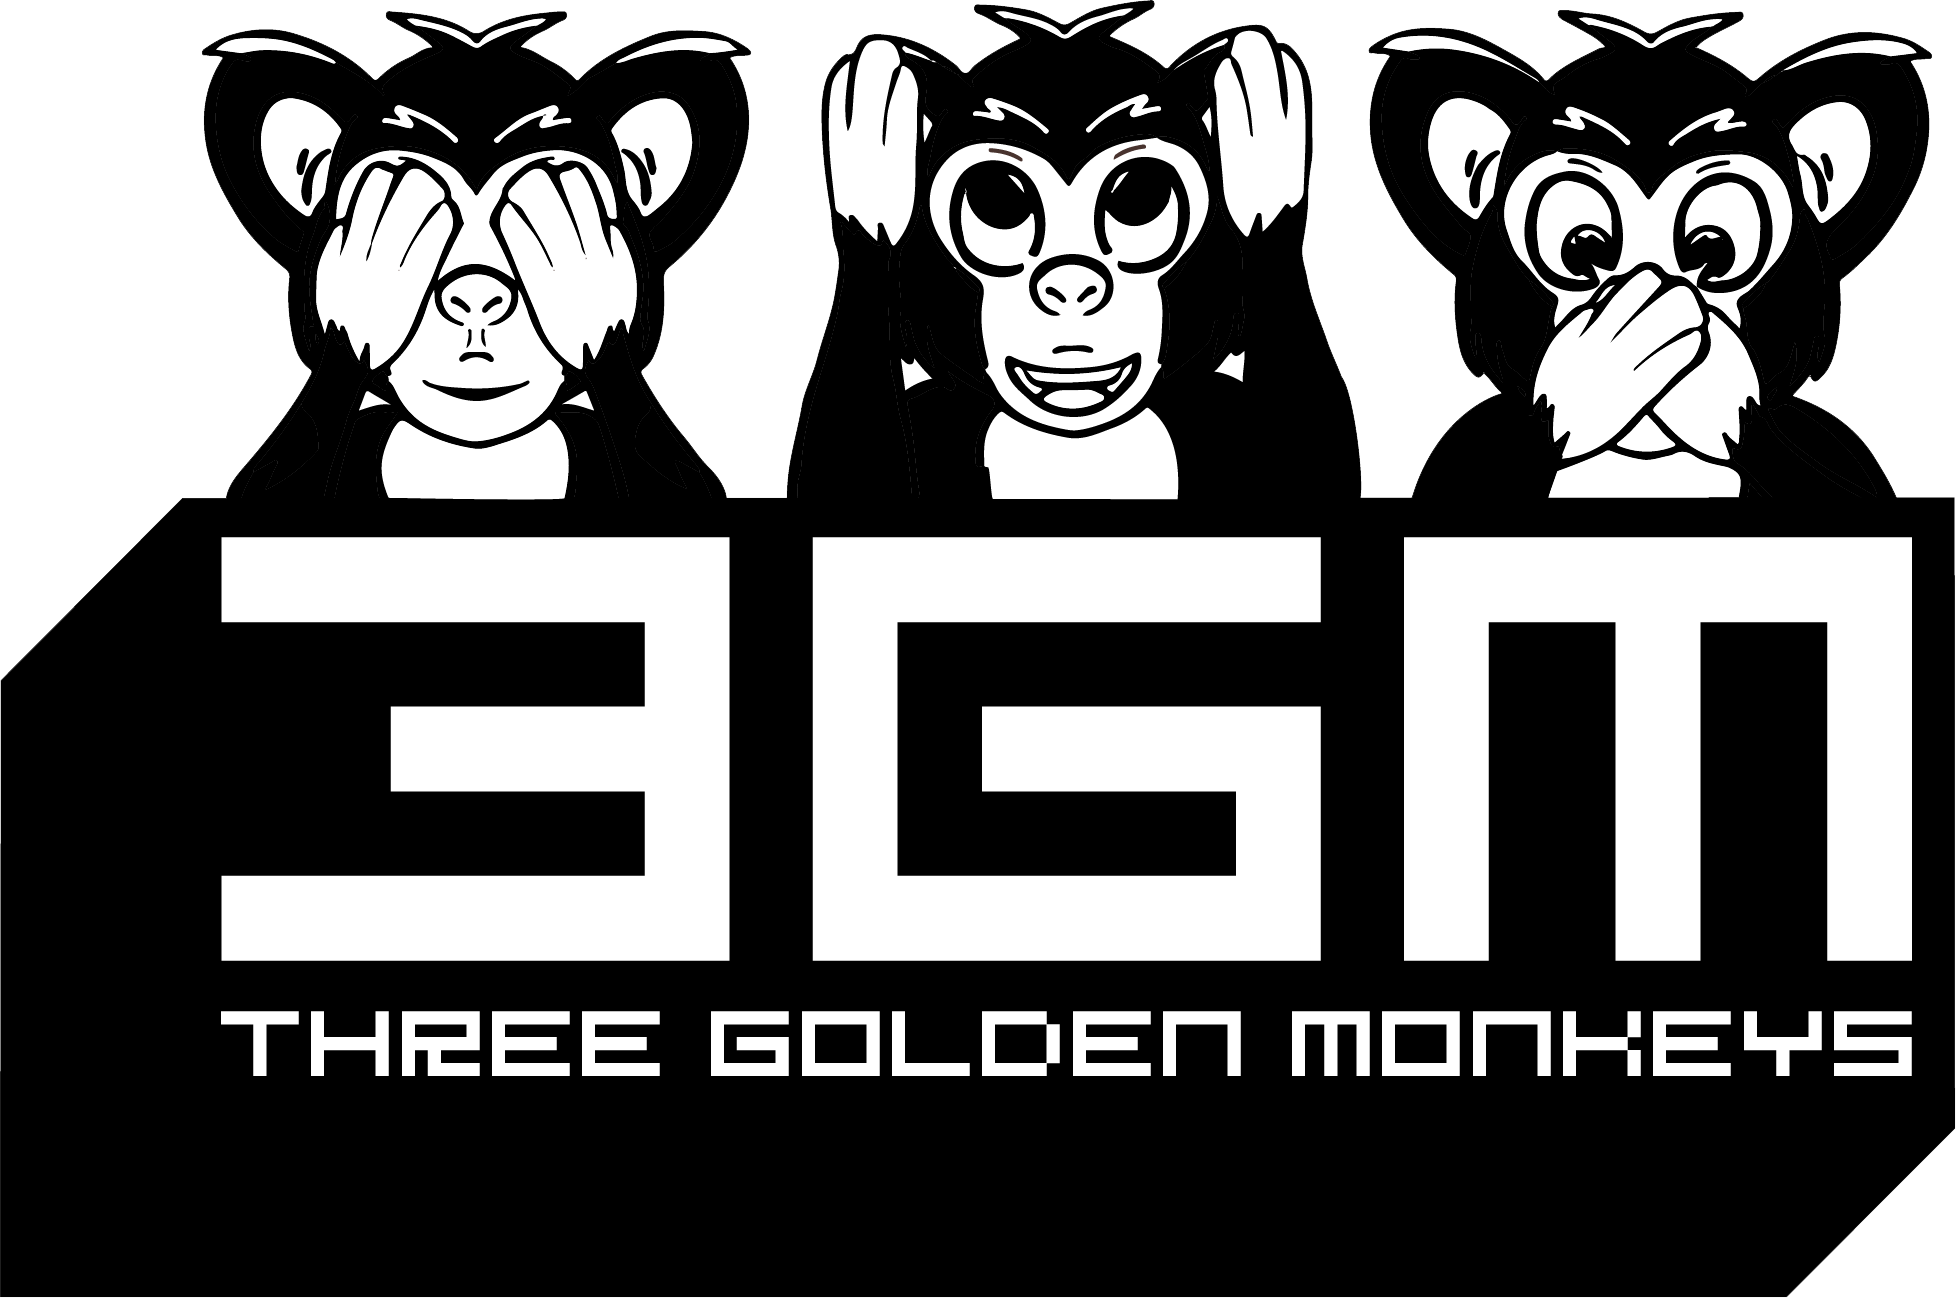 juego de peleas de dinosaurios Archives - Three Golden Monkeys Lab